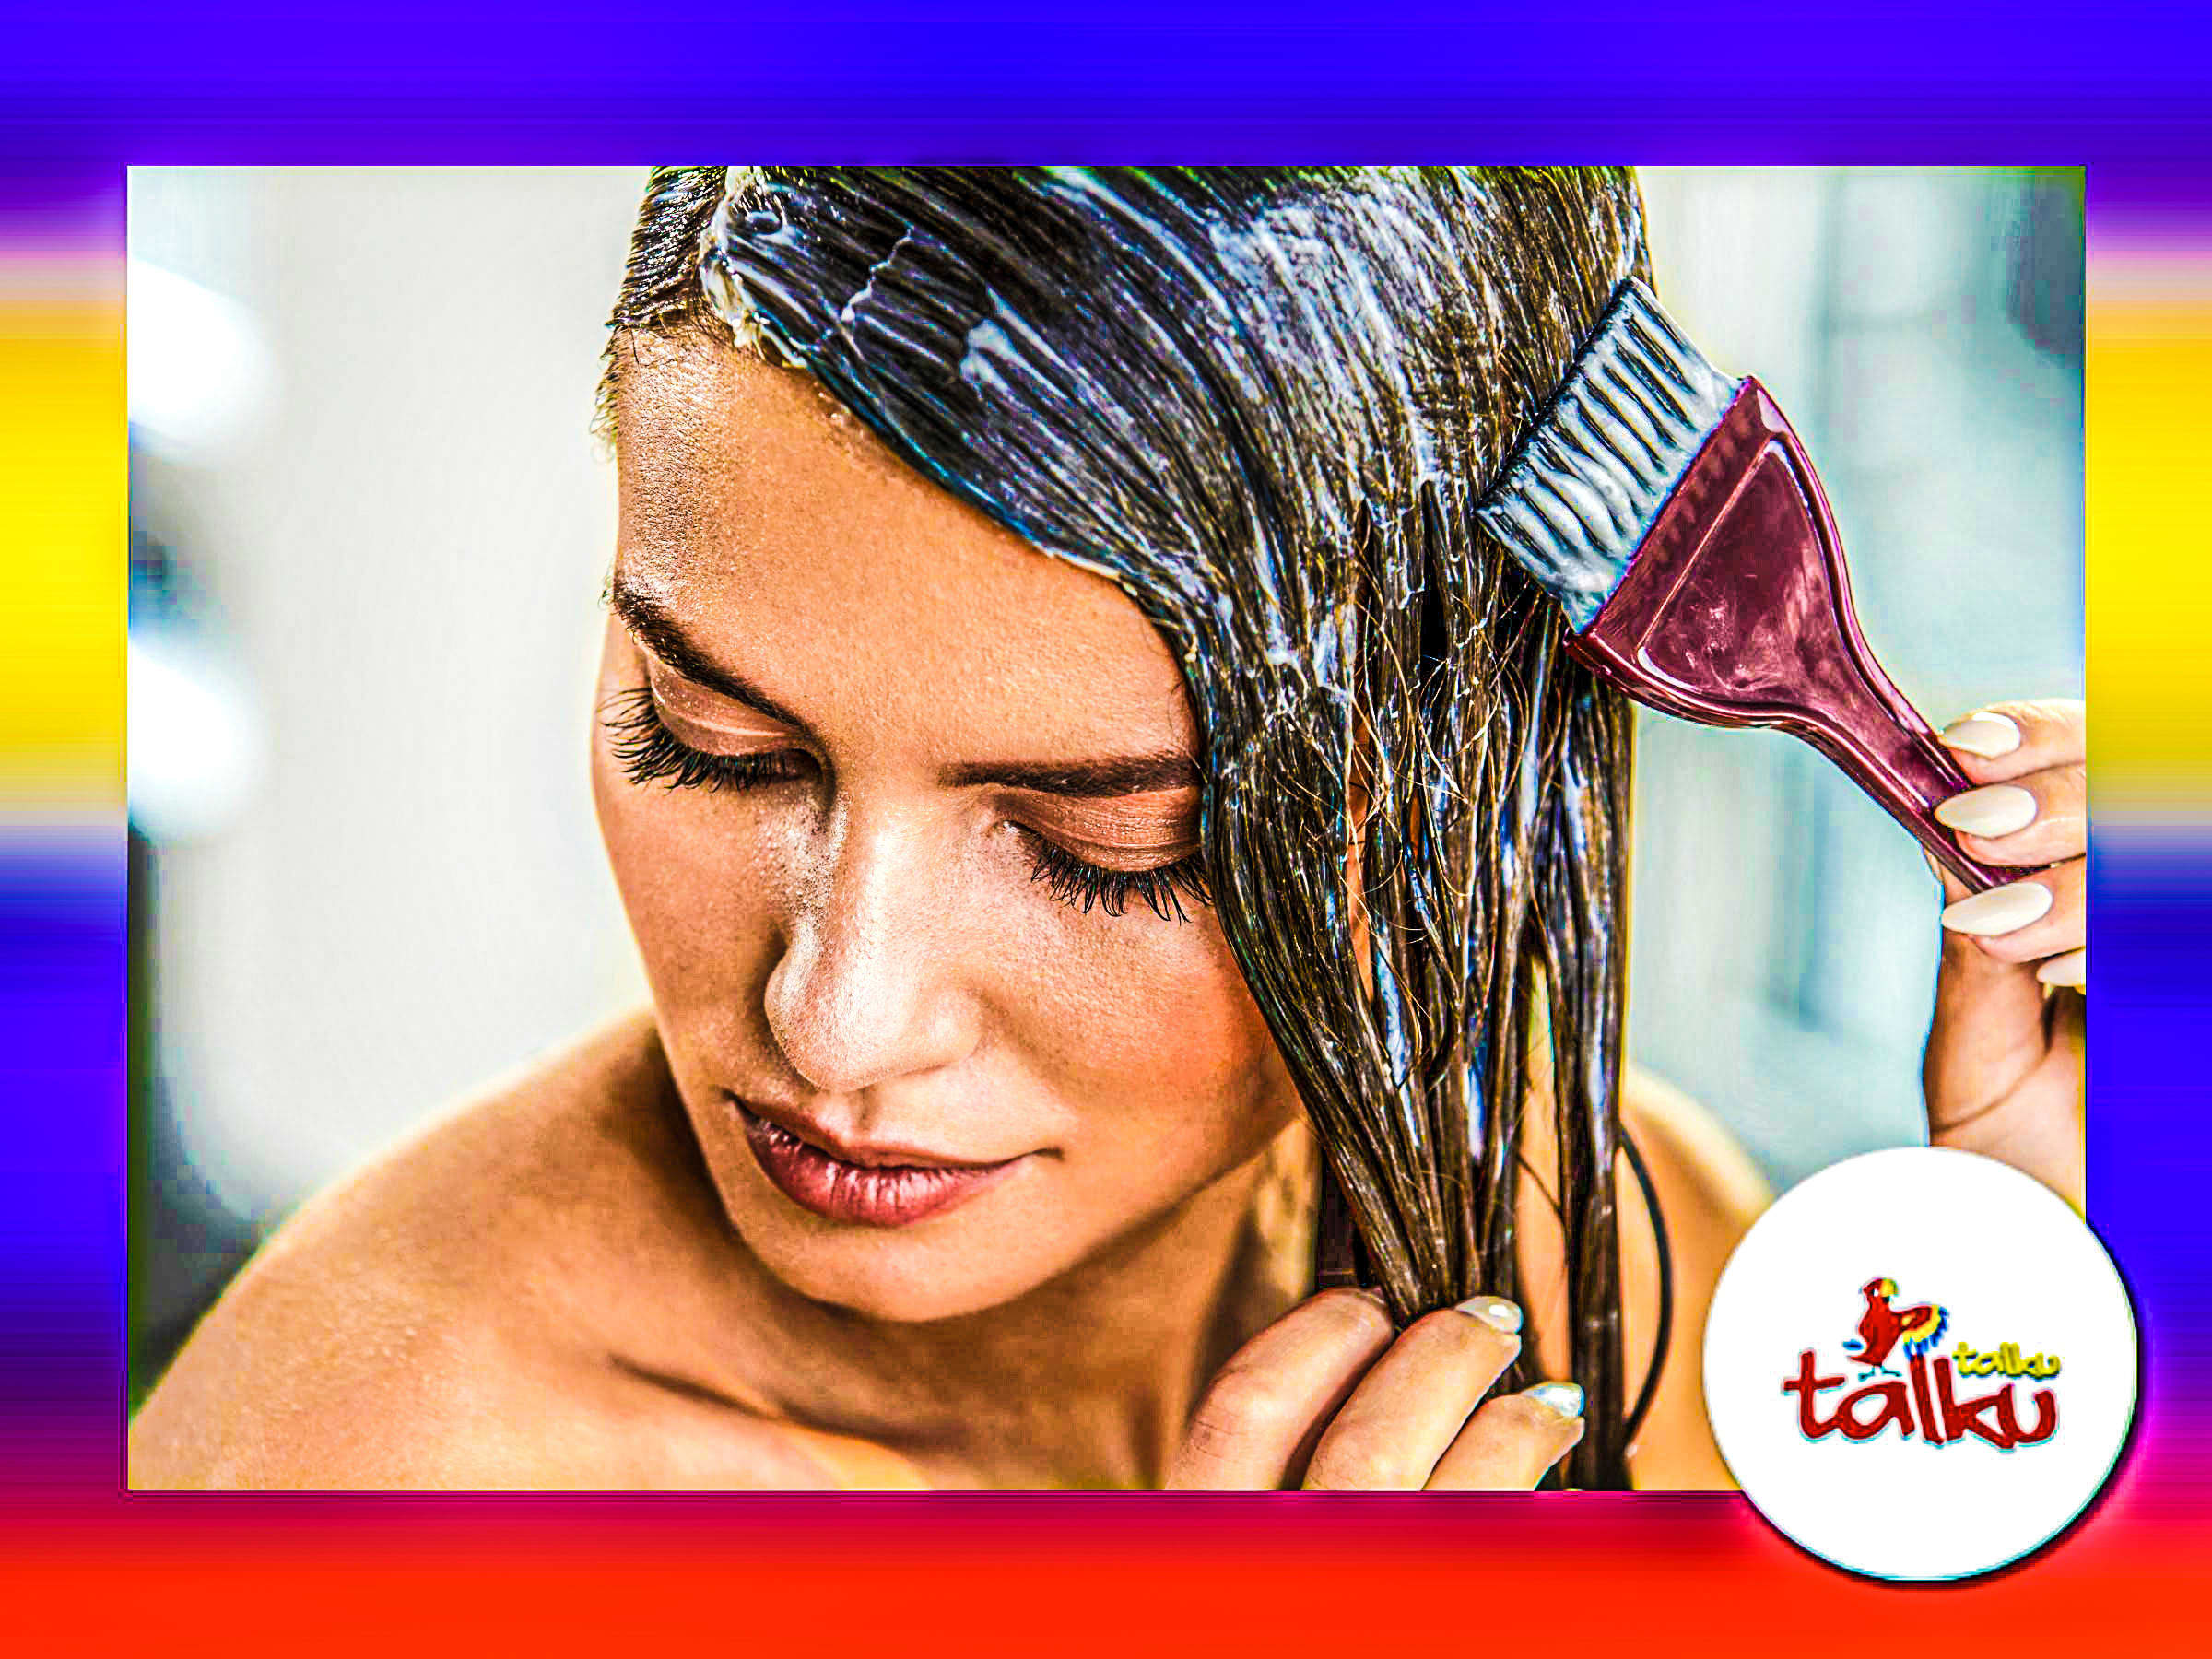 Is it safe to dye your hair?